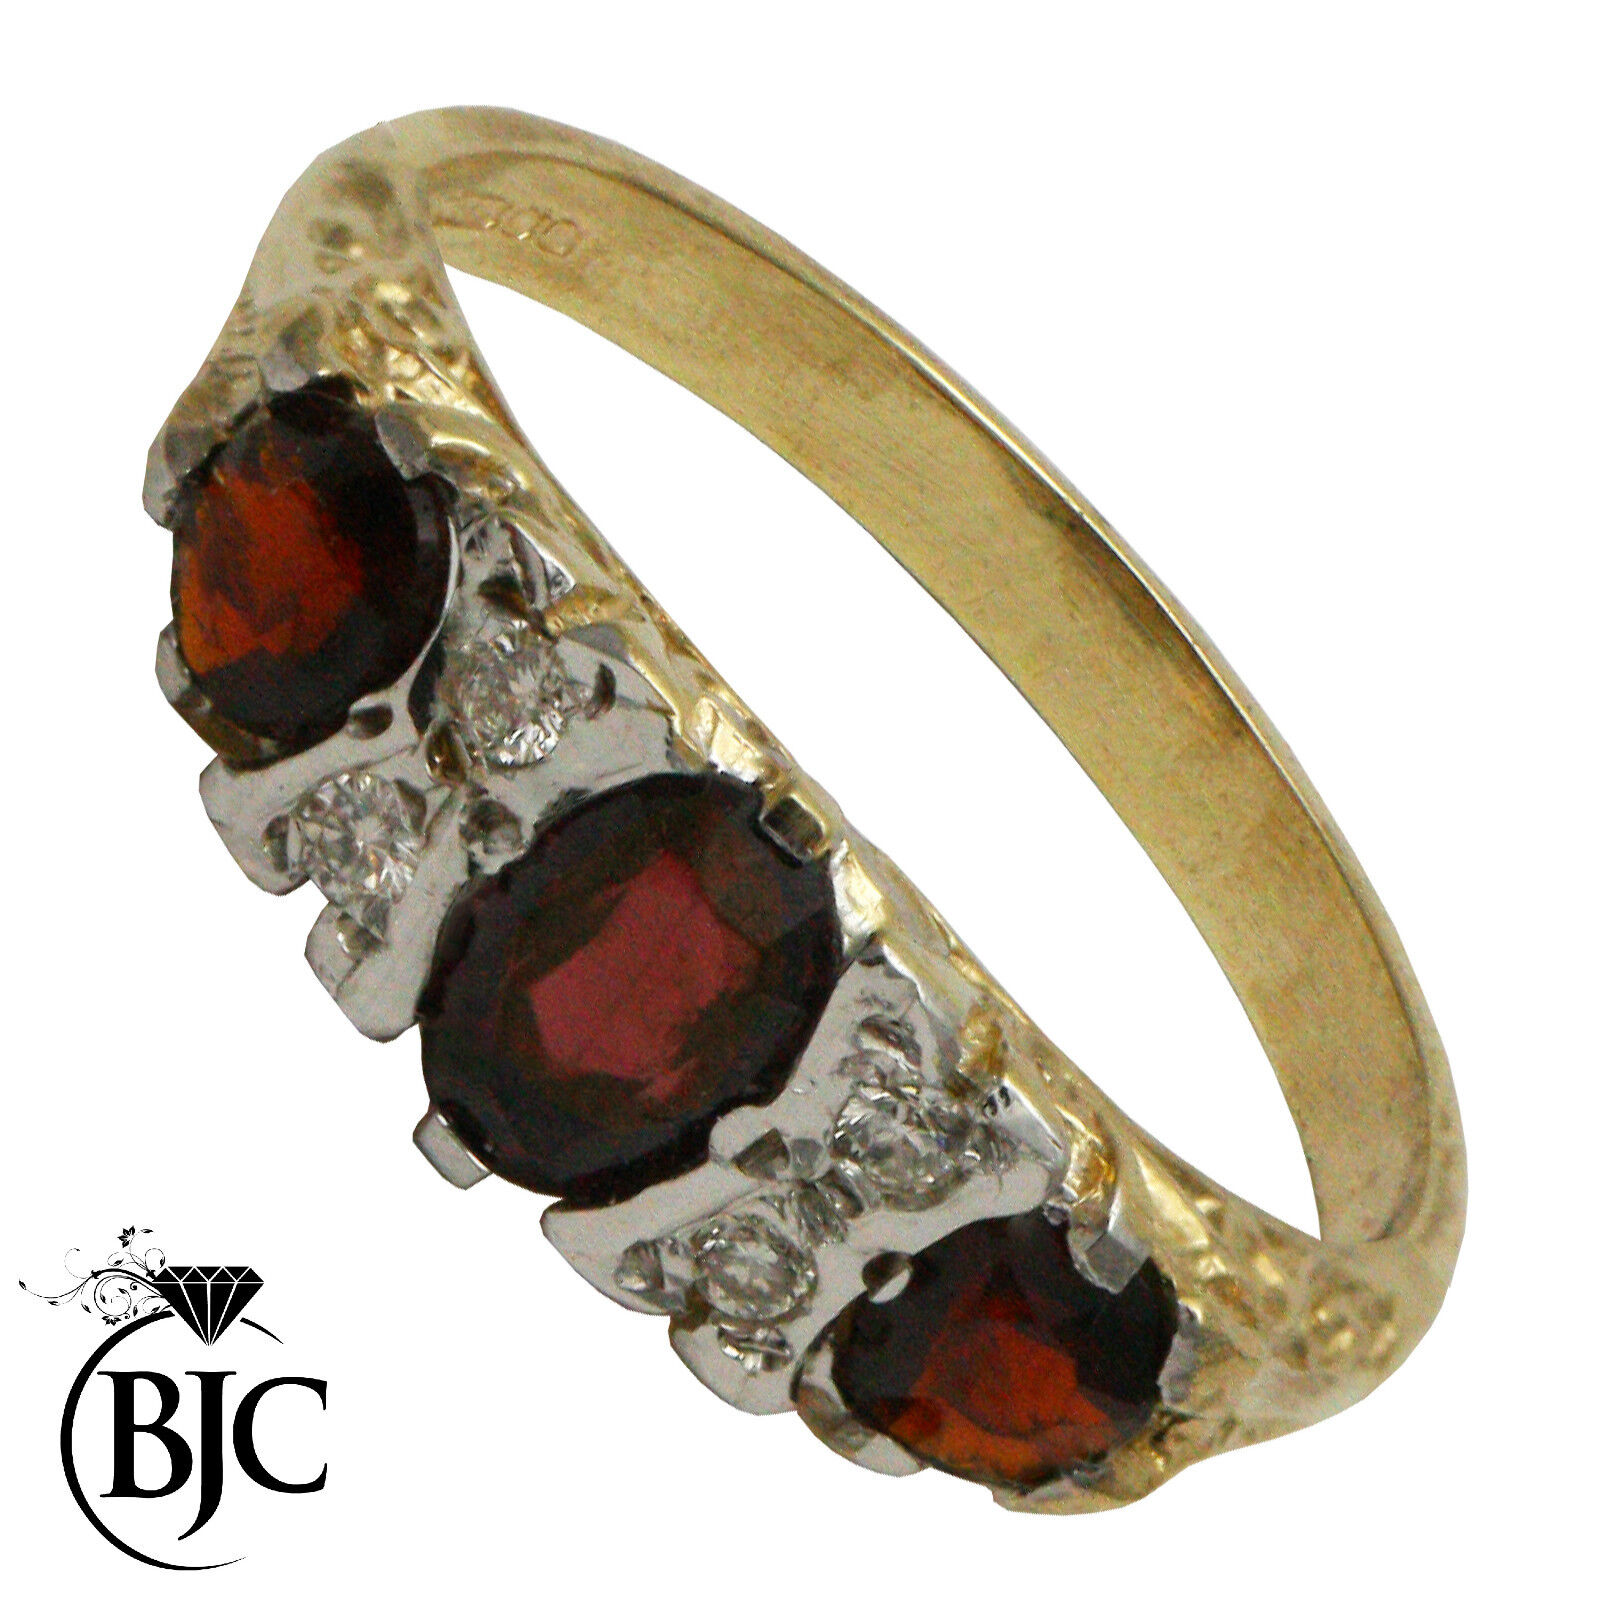 BJC 9 Ct Or yellow Grenade & Diamant Ovale Gypsy BAISER BAGUE size M R127